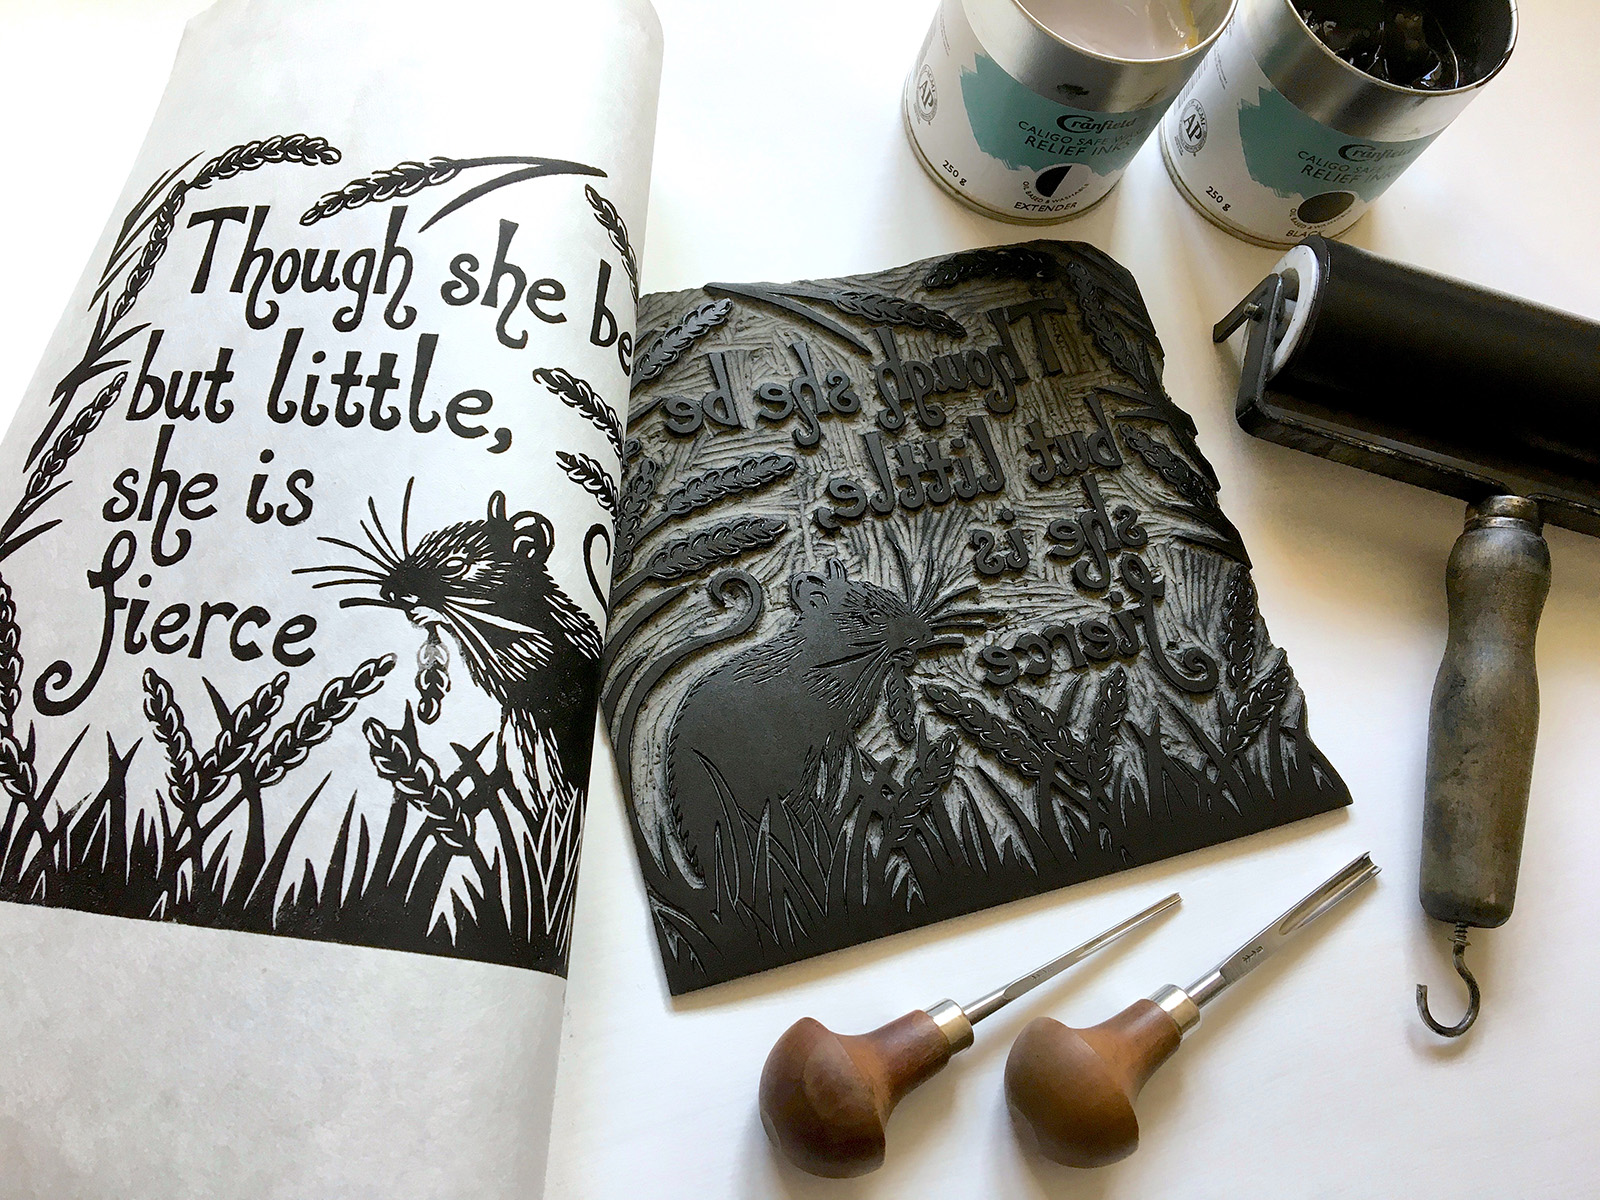 An ink print and block of a little mouse in a field with the text: Though she be but little she is fierce